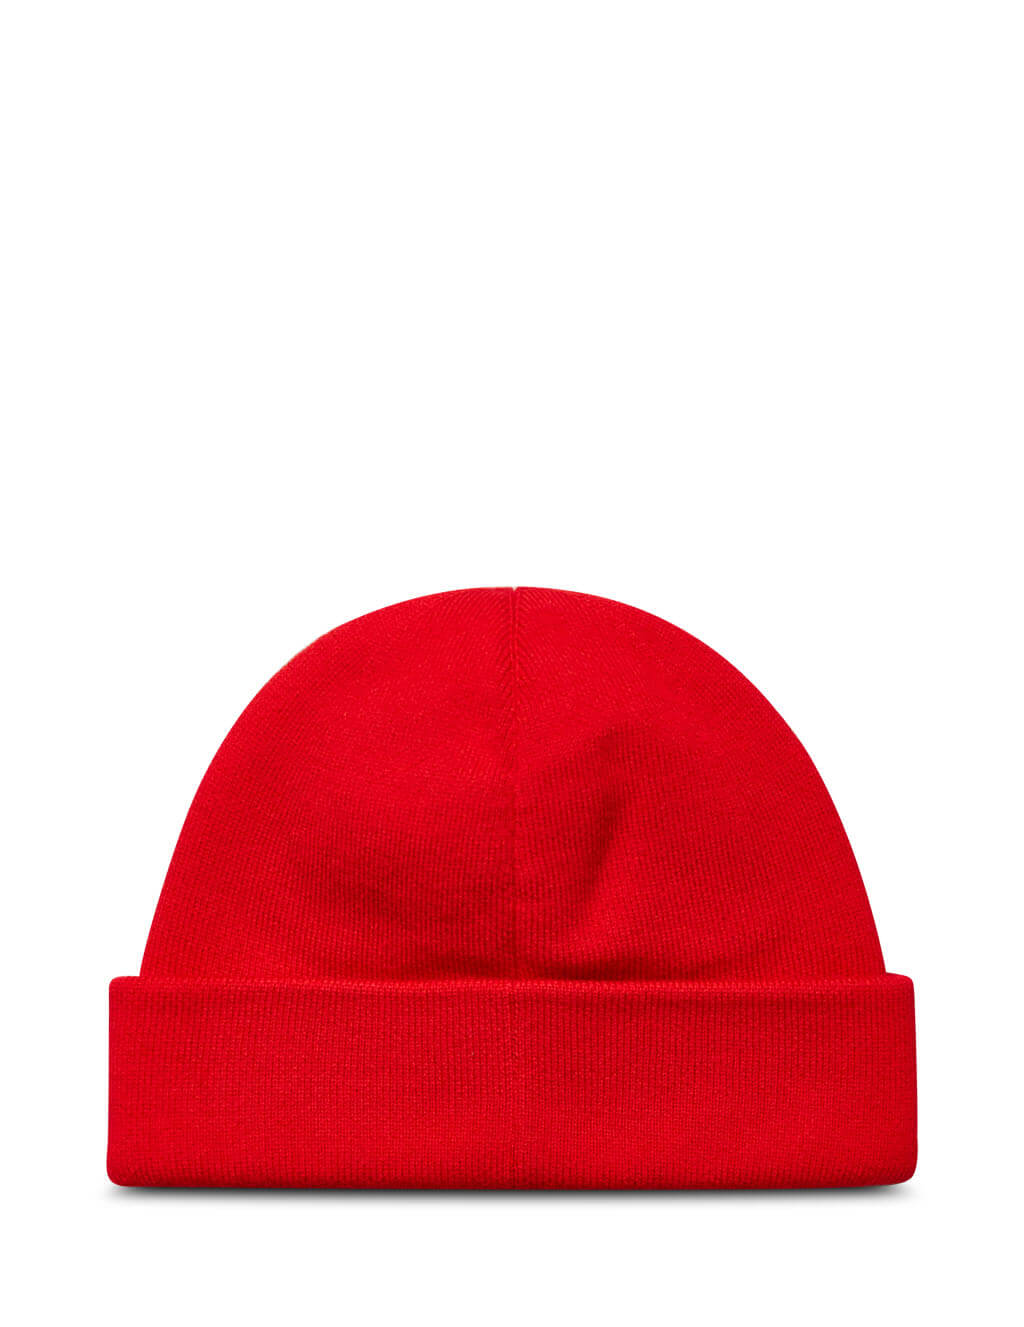 Gucci Men's Flame Red Vintage Logo Beanie 612118 4G332 6500